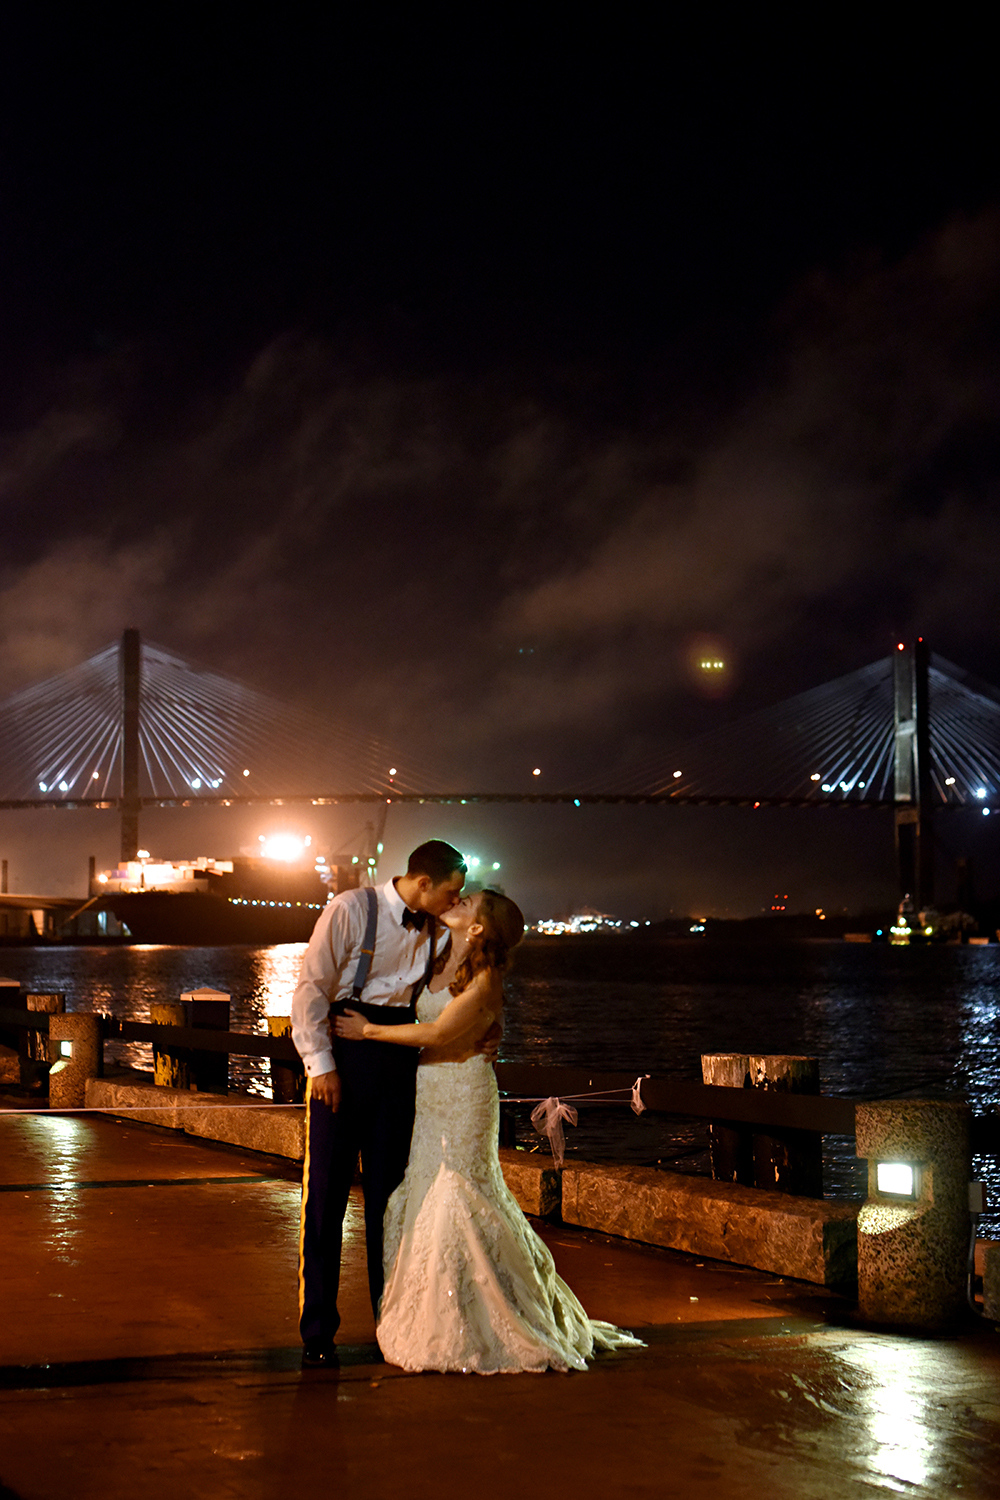 Savannah Wedding Night by Kelli Corn